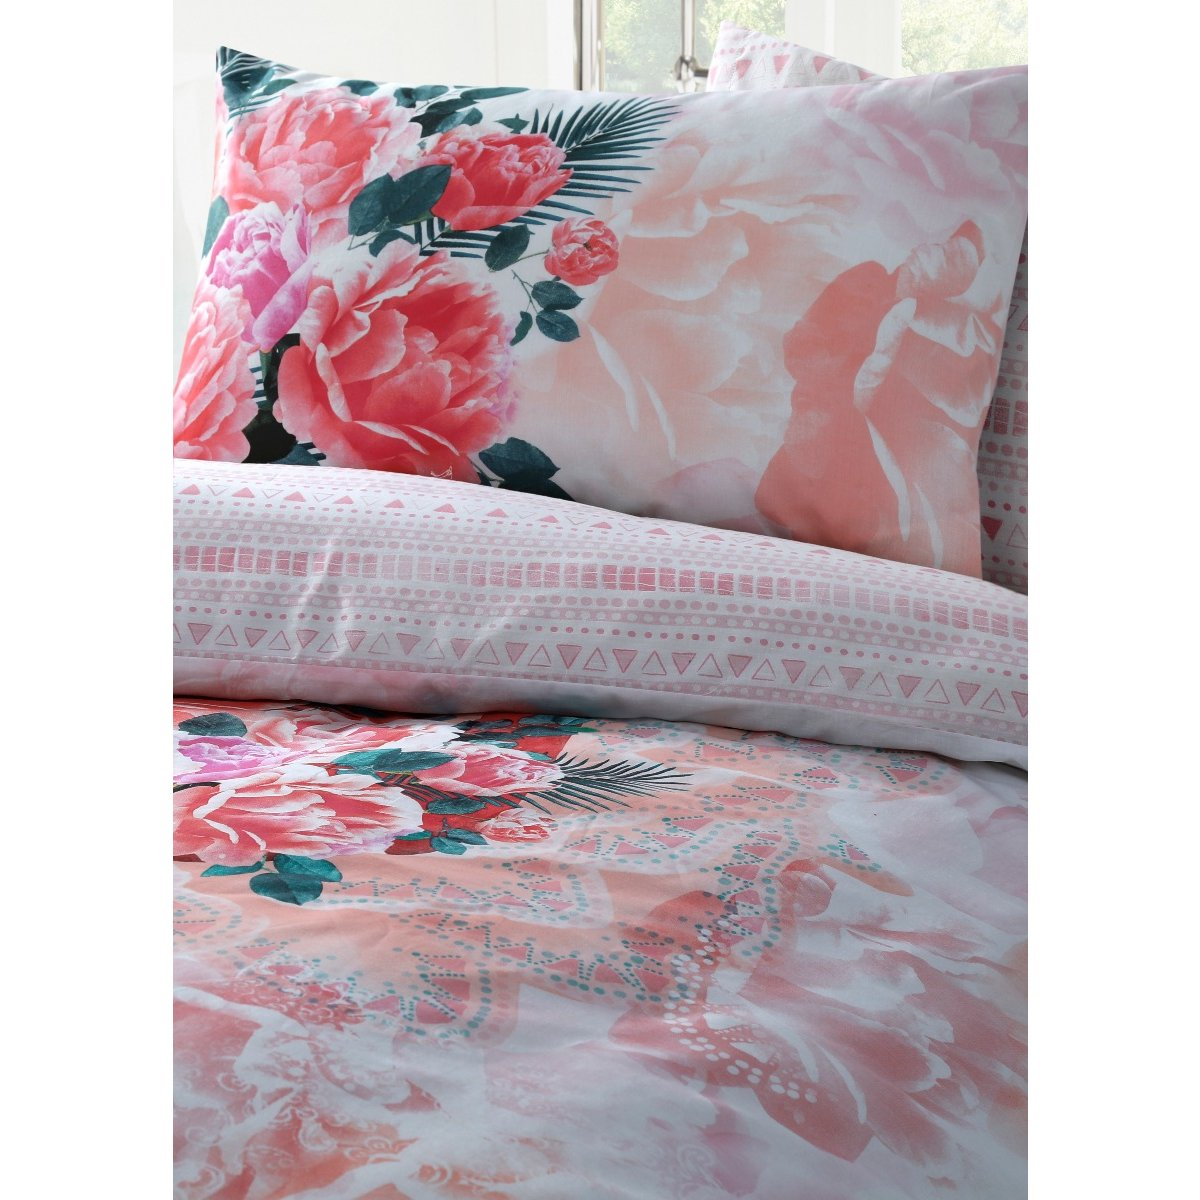 Flamingo Floral Bedding - Reversible Duvet Cover and Pillowcase Set